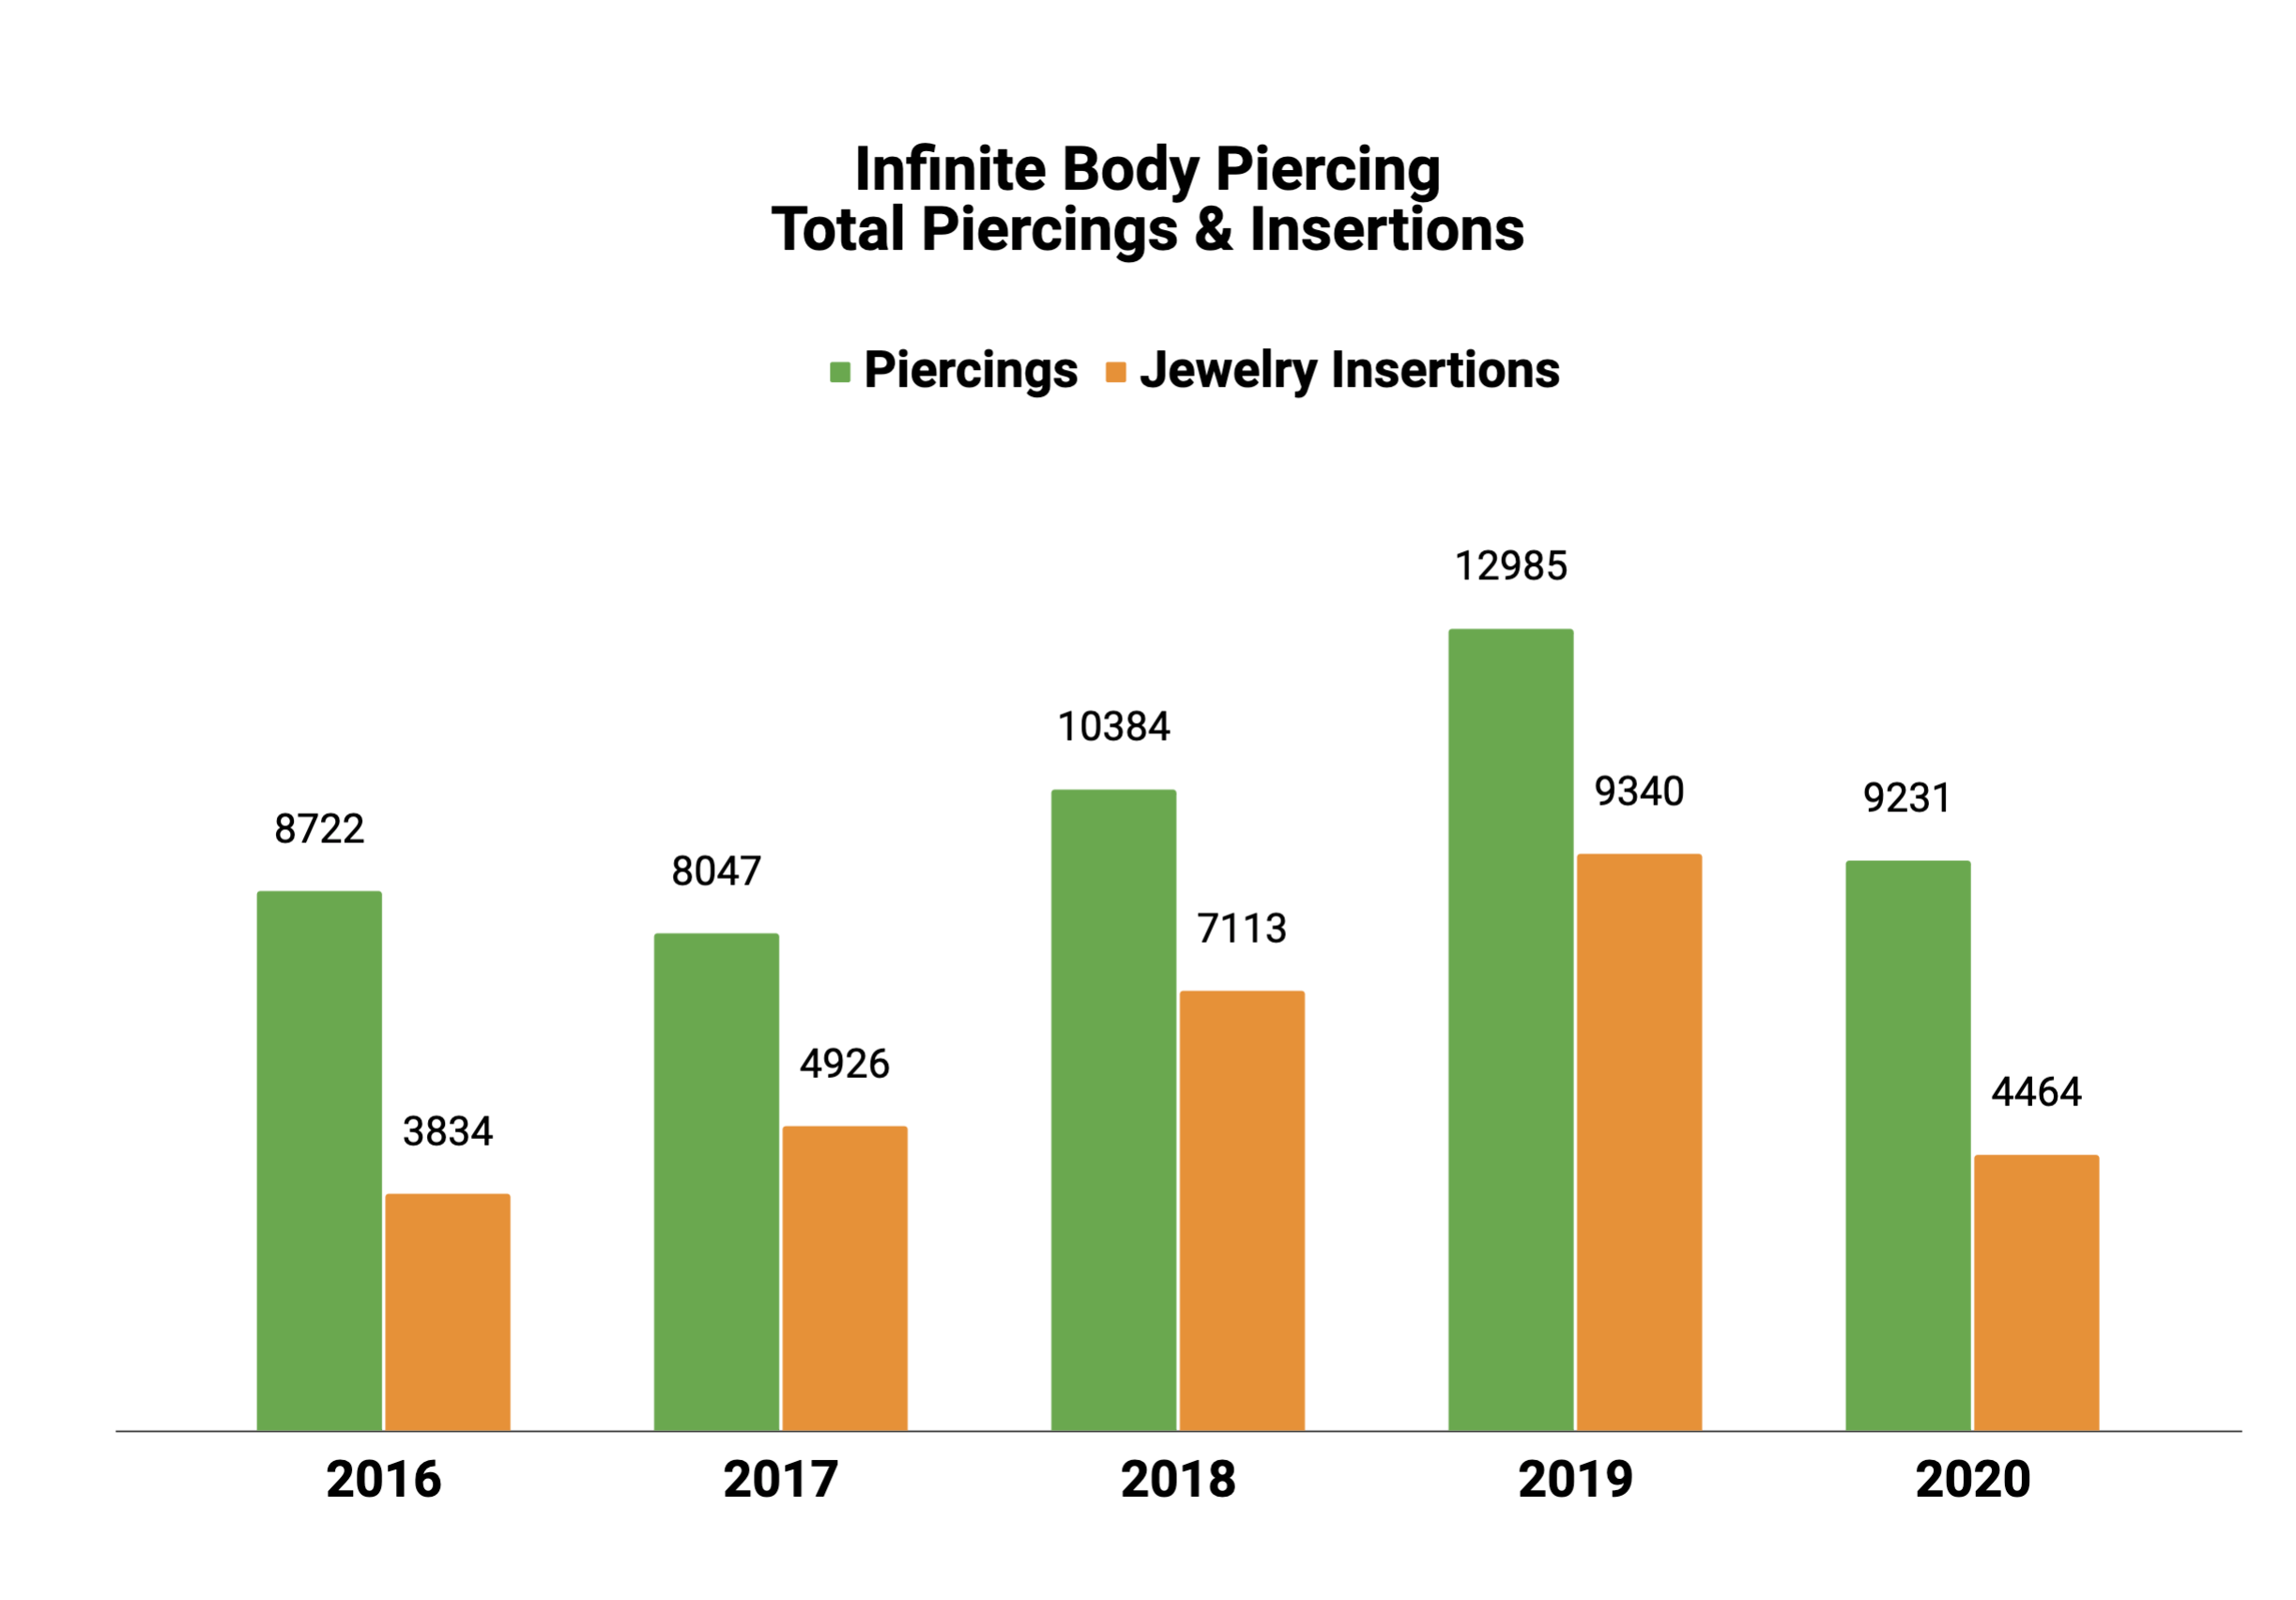 Total Piercings and Jewelry Insertions Annual Comparison